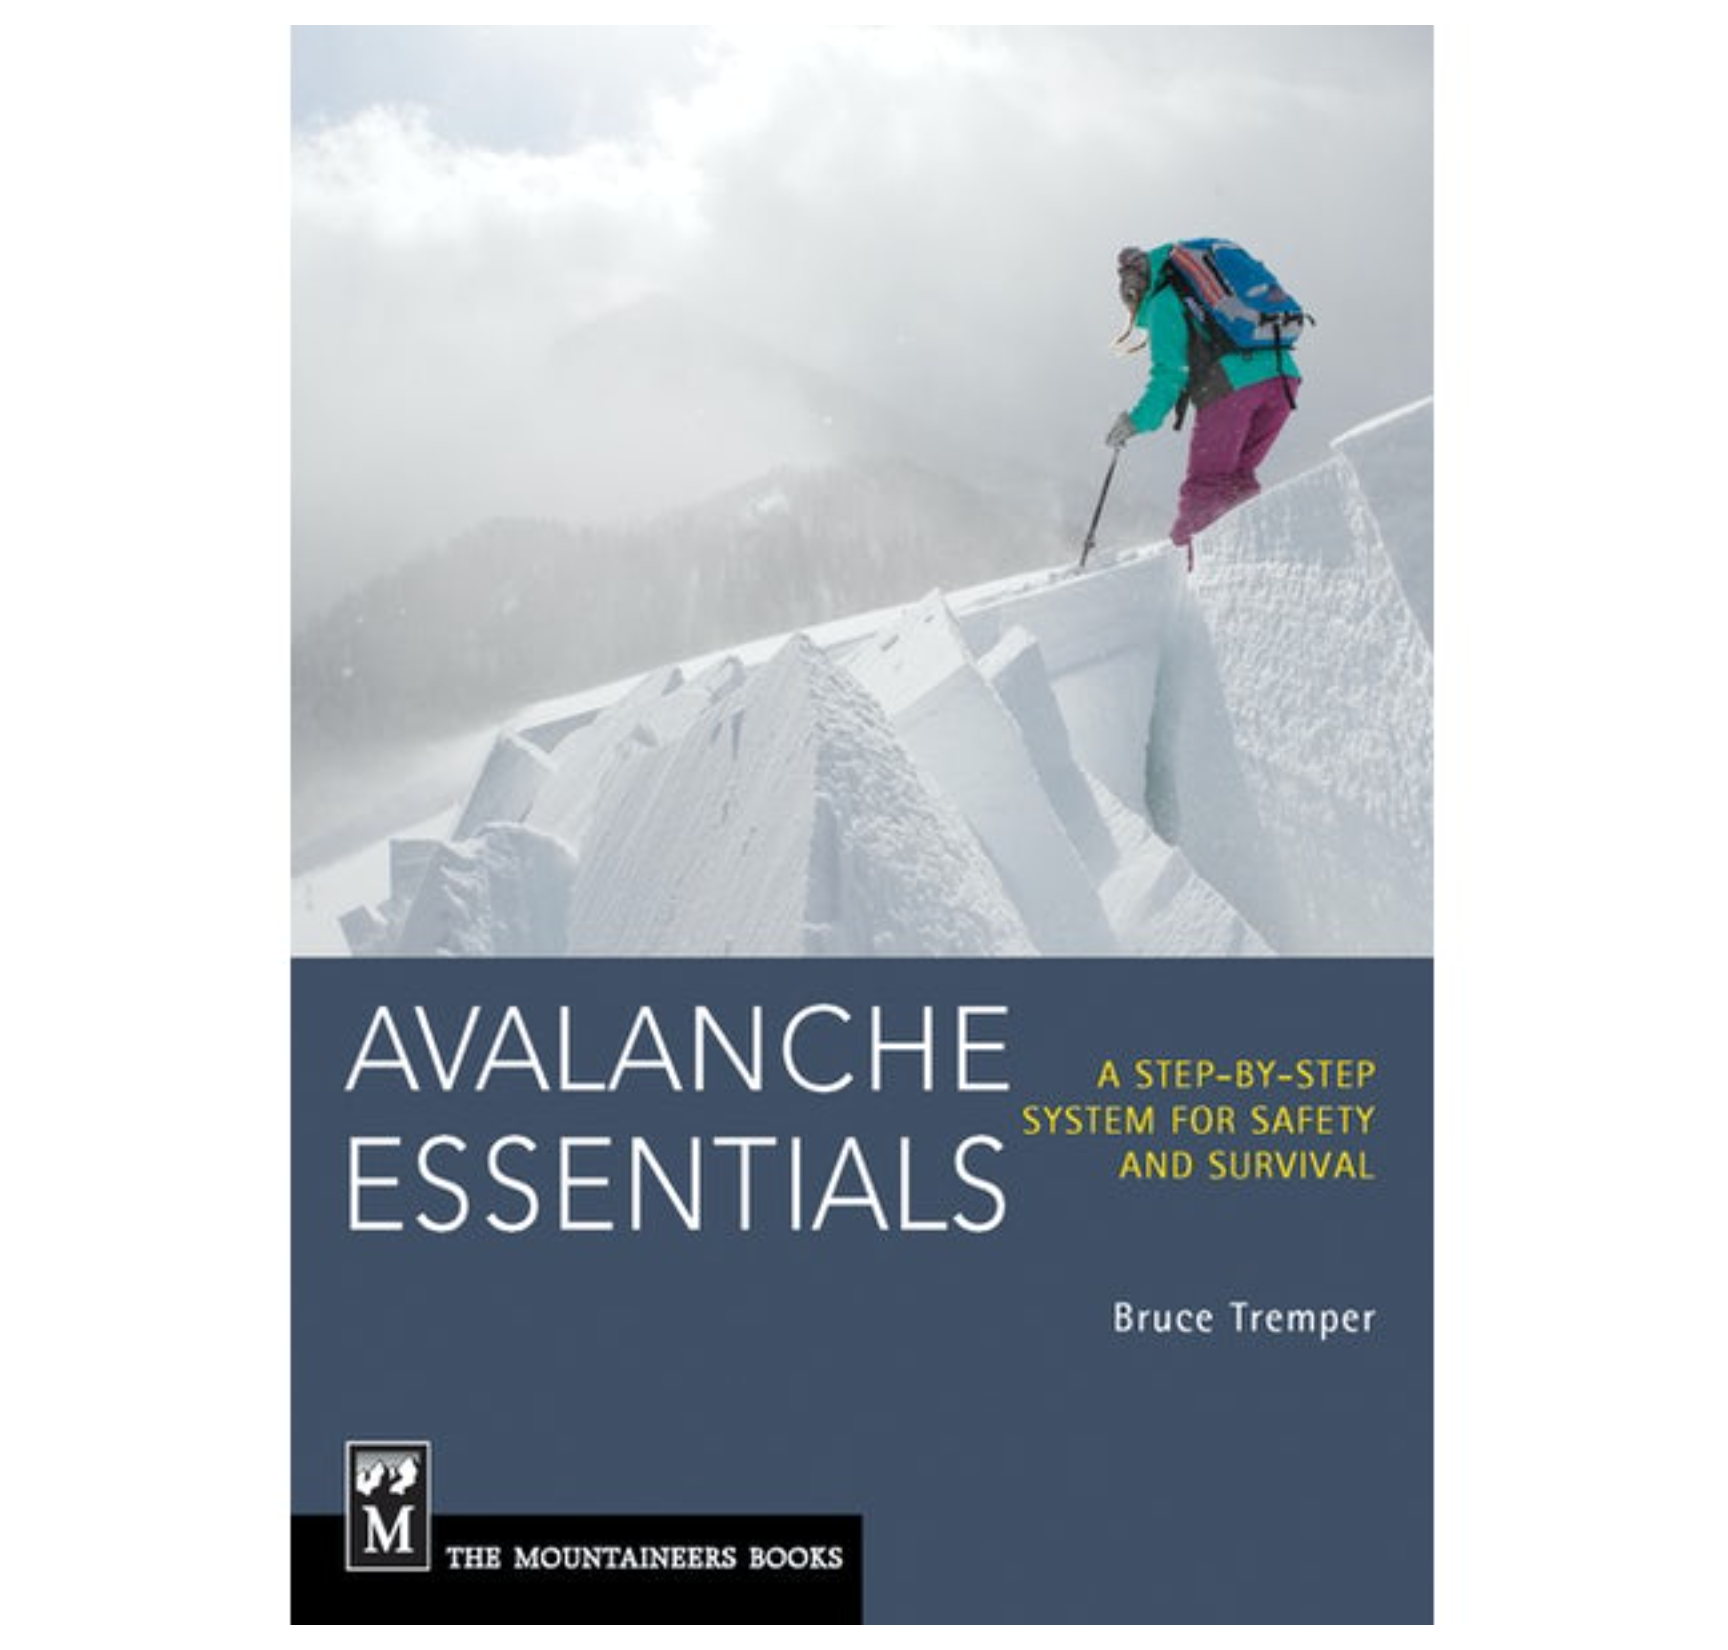 Avalanche Essentials: A Step-By-Step System for Safety and Survival